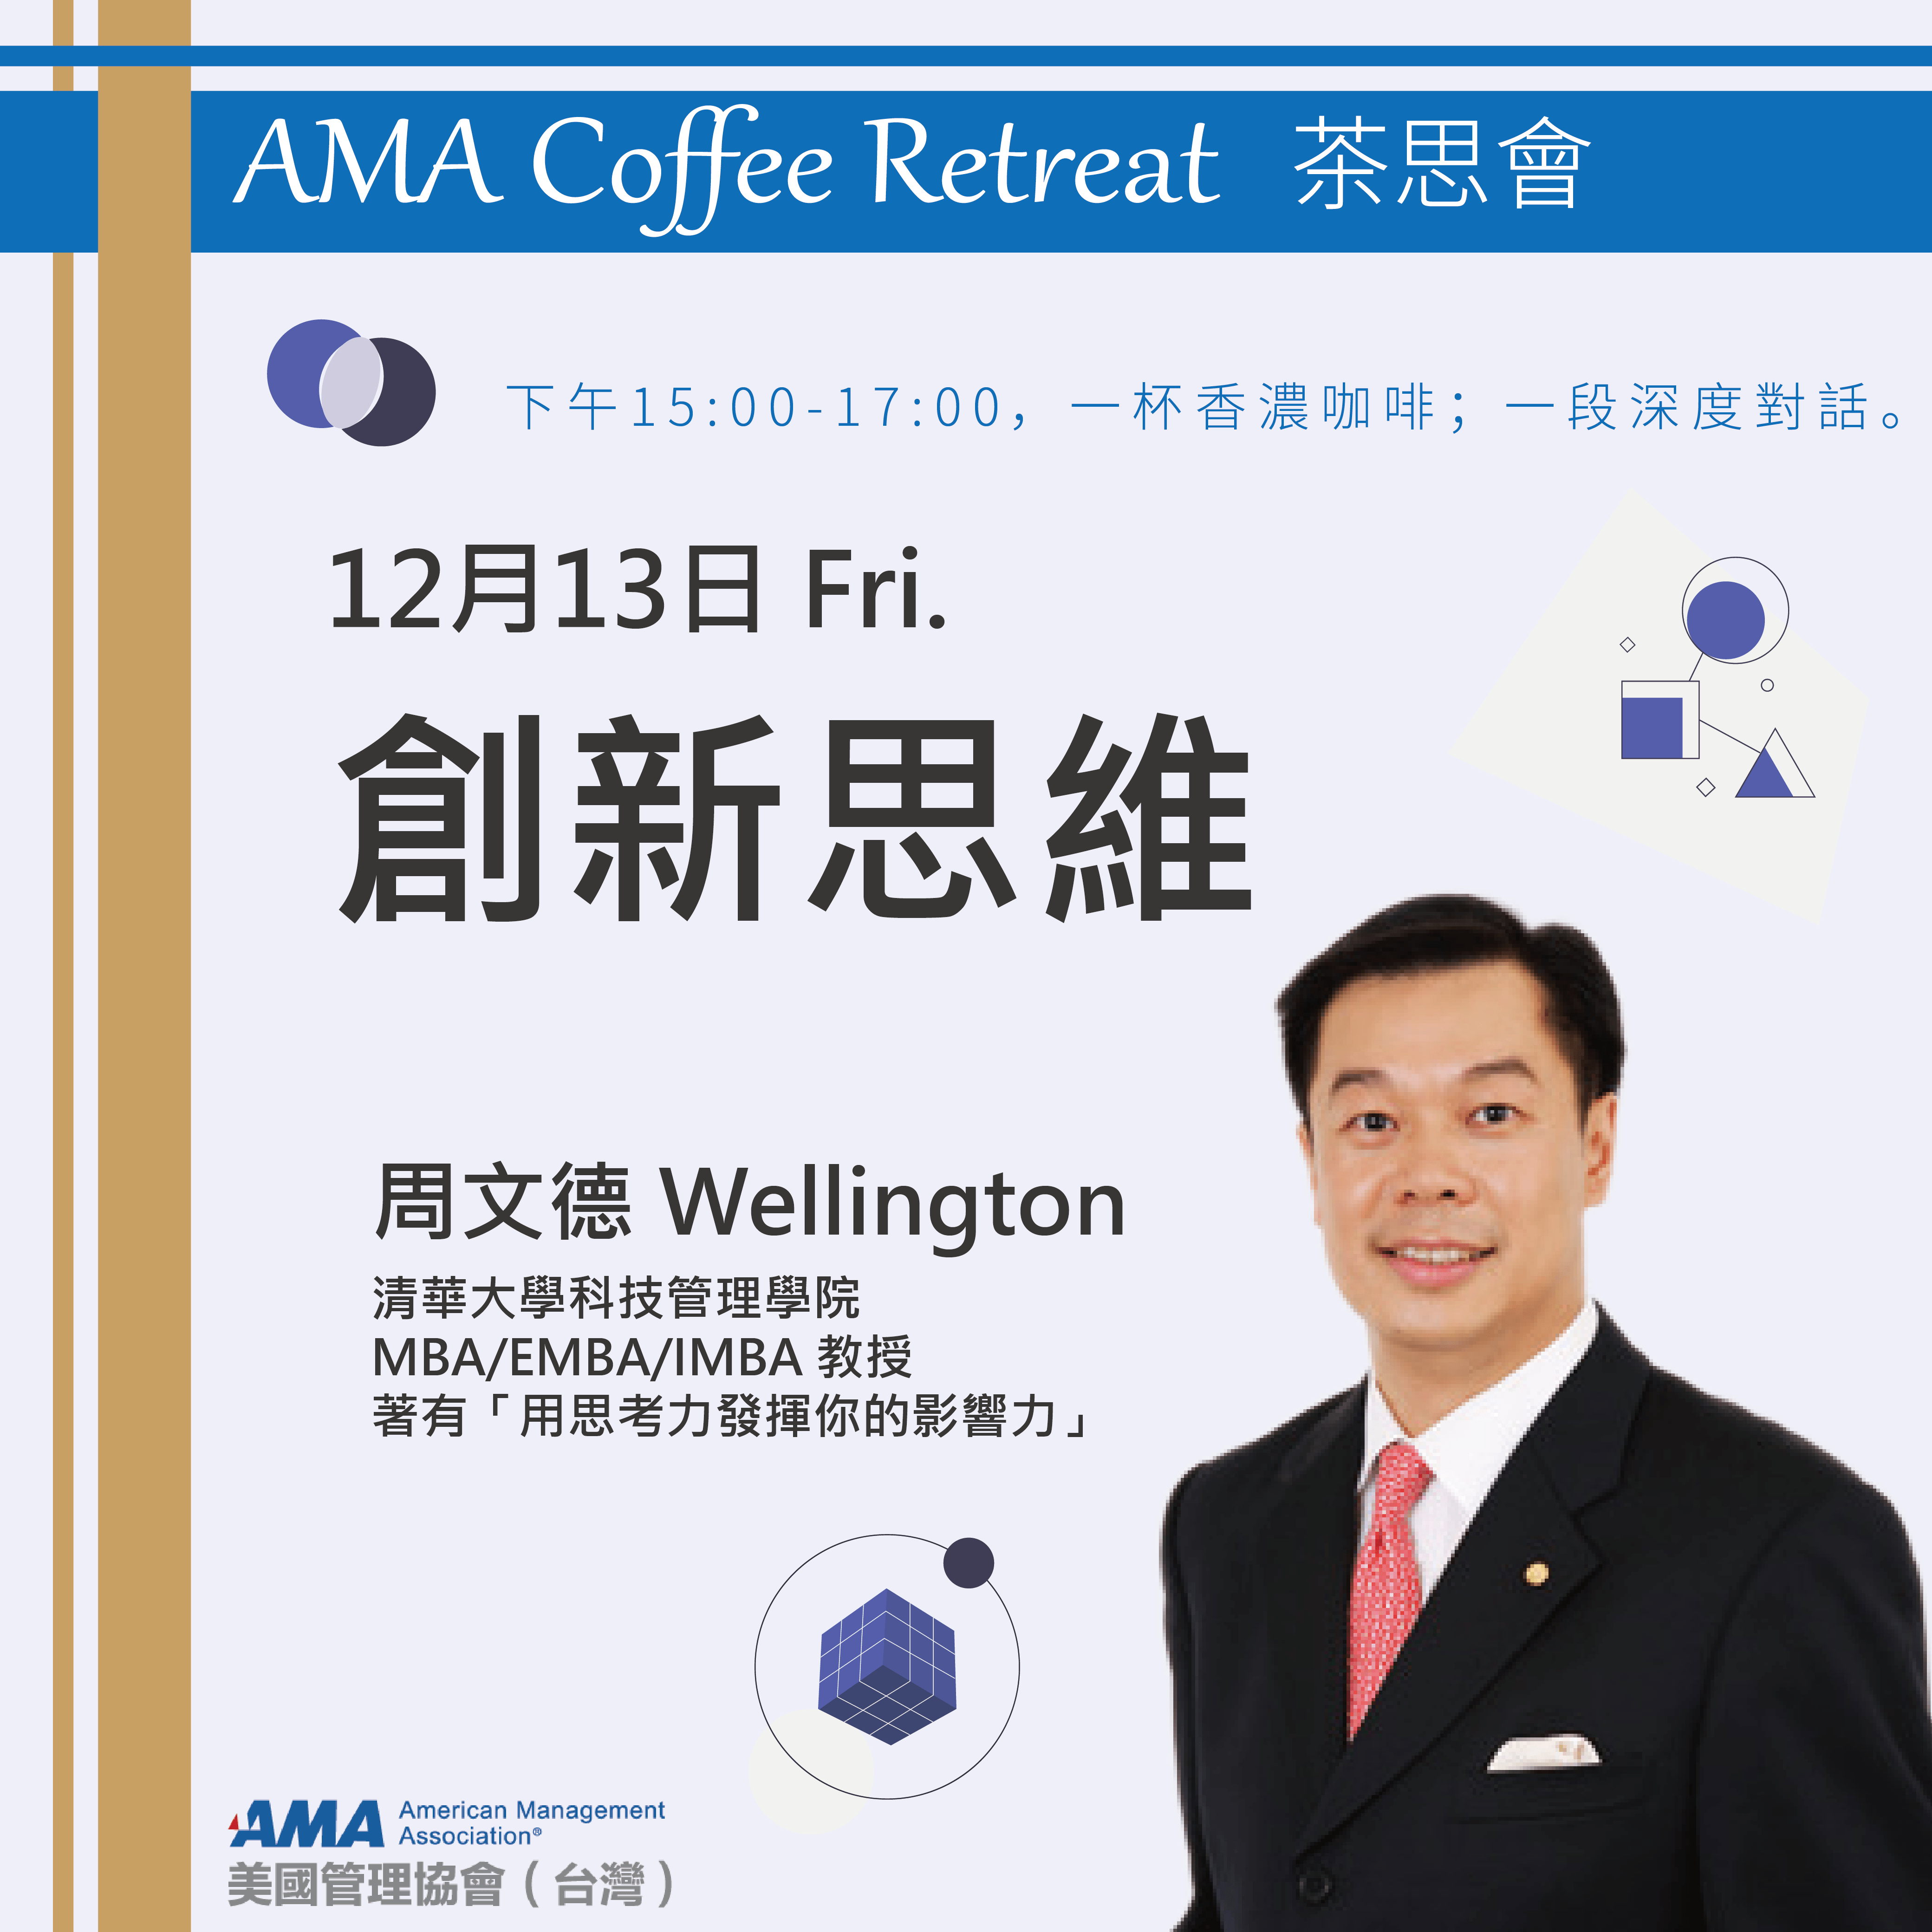 AMA Coffee Retreat 茶思會#4